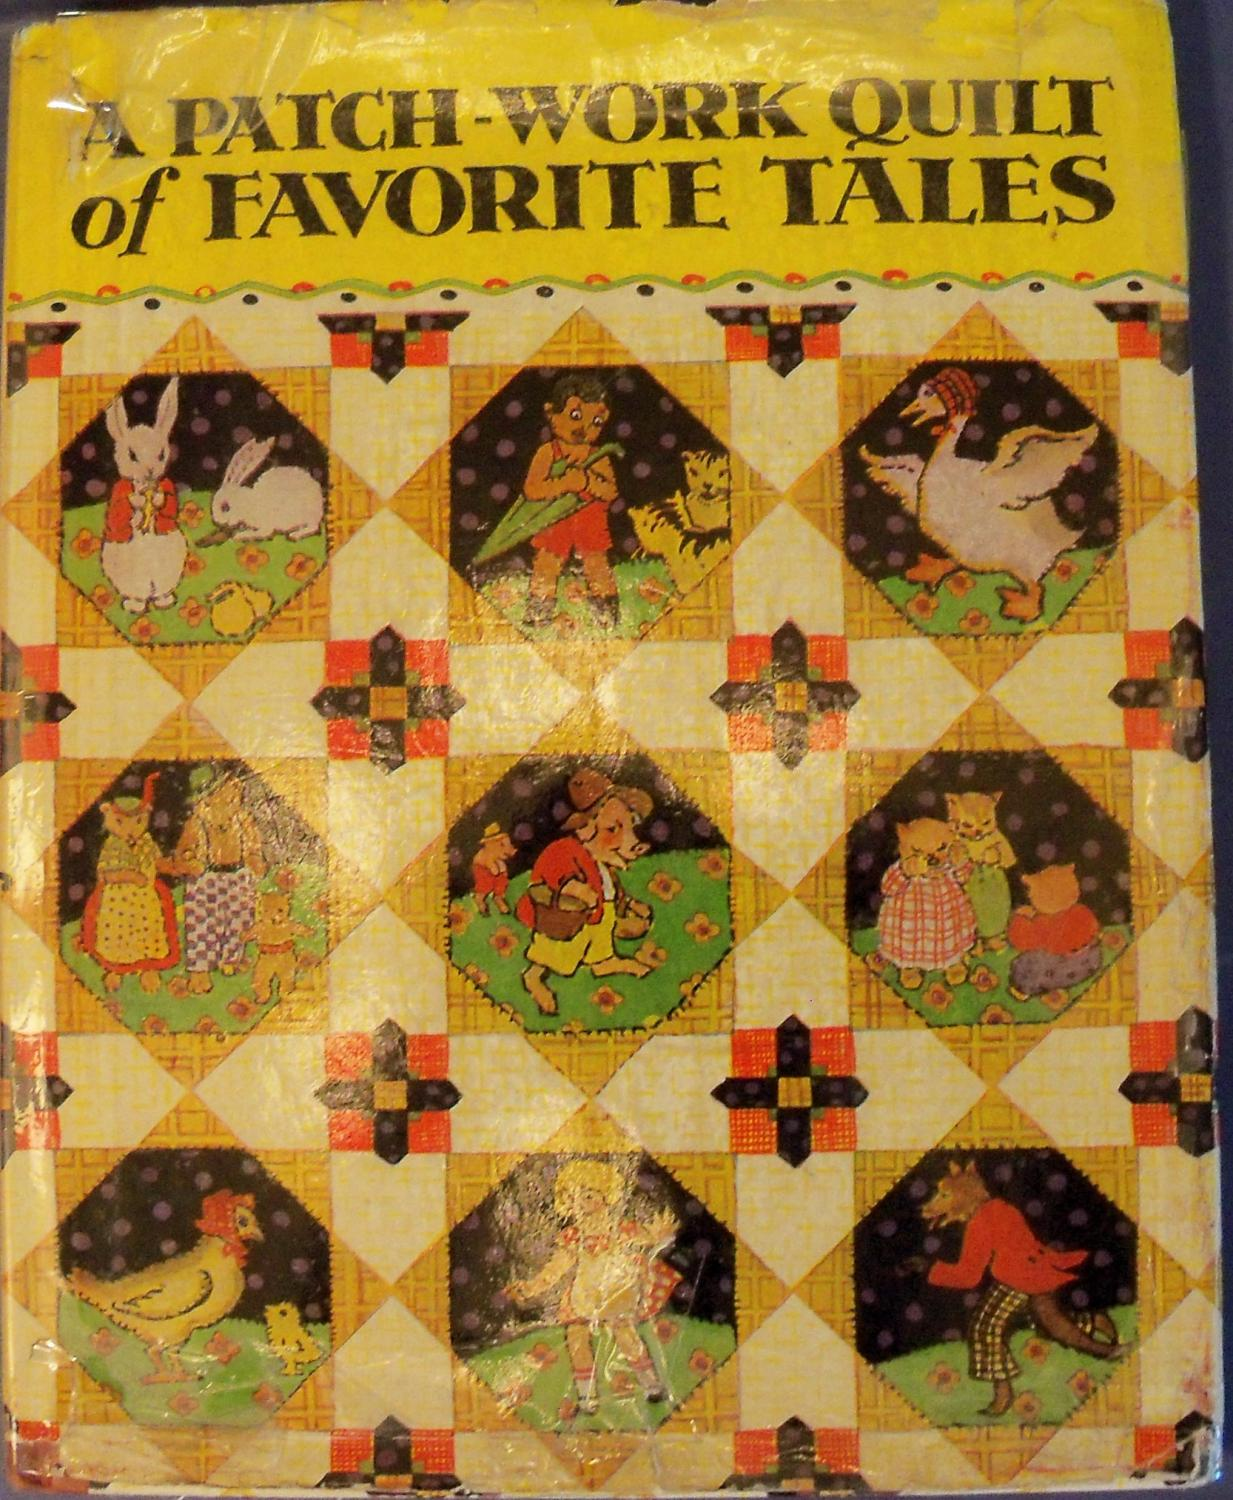 A PATCH-WORK QUILT OF FAVORITE TALES